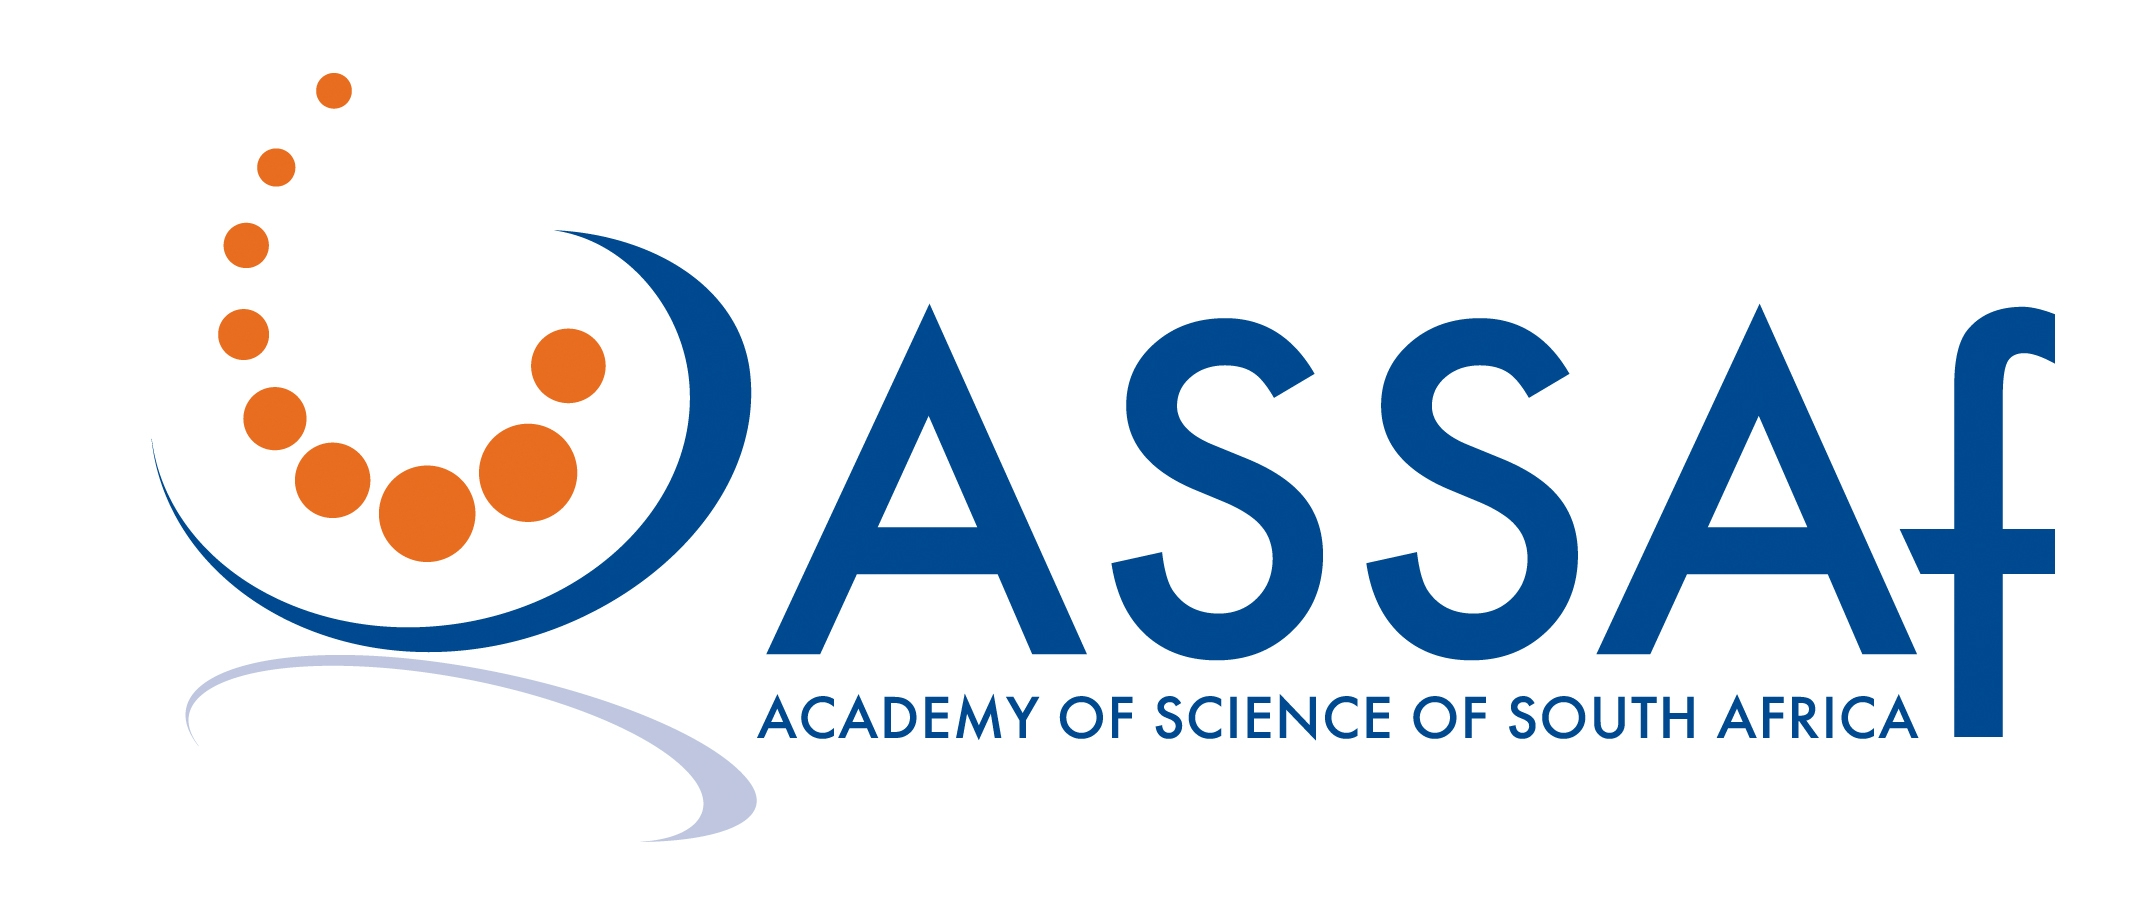 Academy of Science of South Africa (ASSAf) Logo